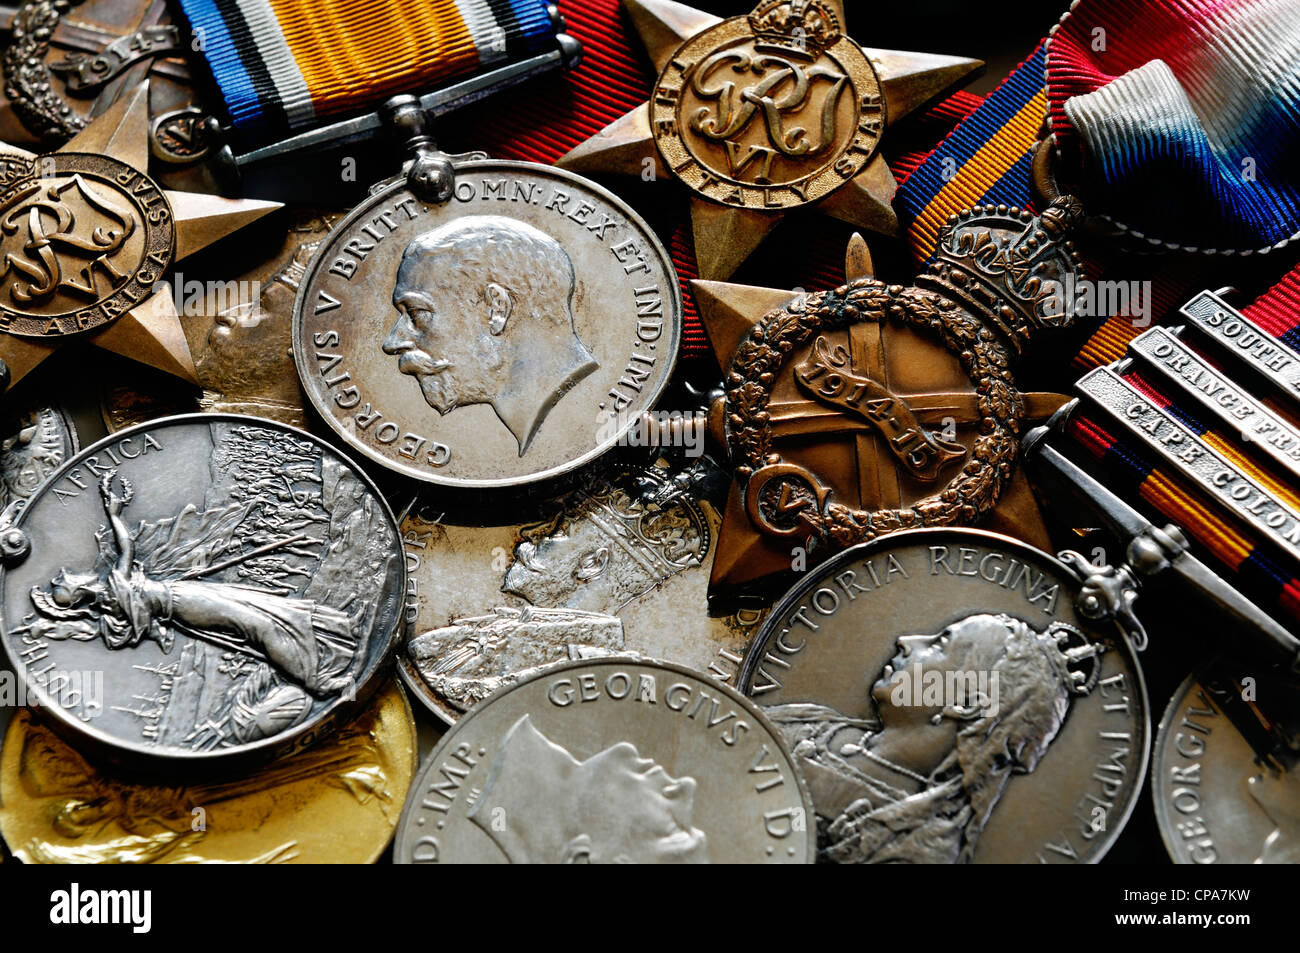 British Military Medals - Stock Image